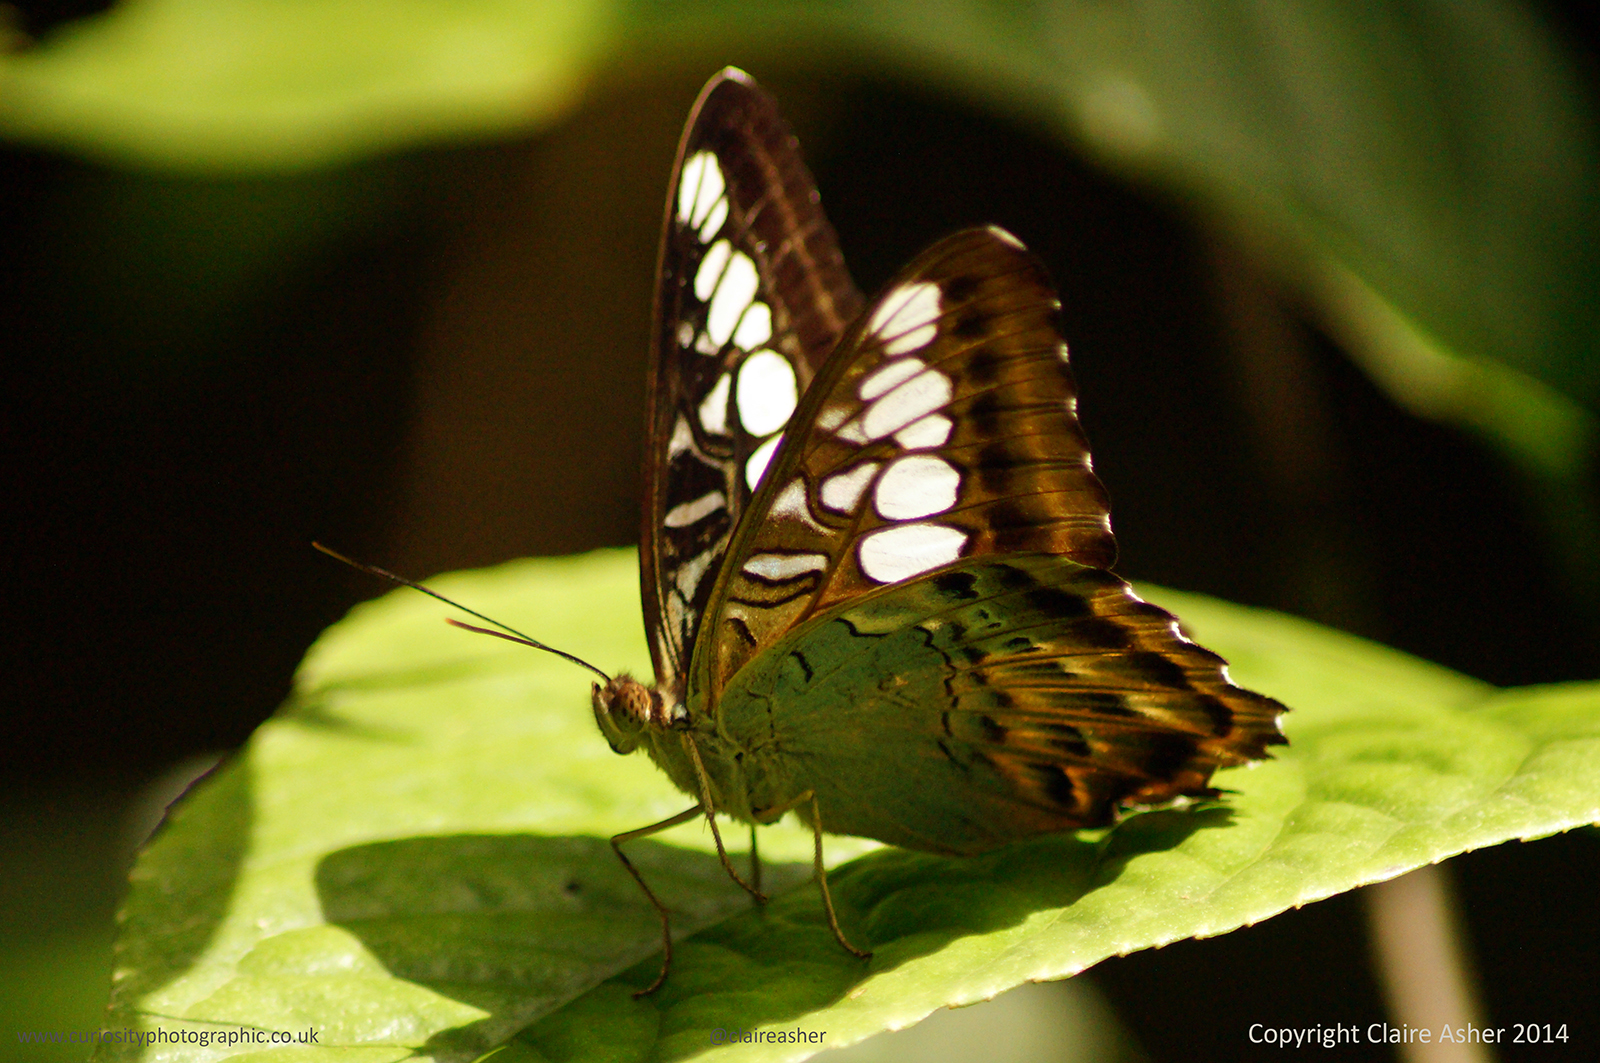 A butterfly photographed in Borneo, Malaysia in 2014.